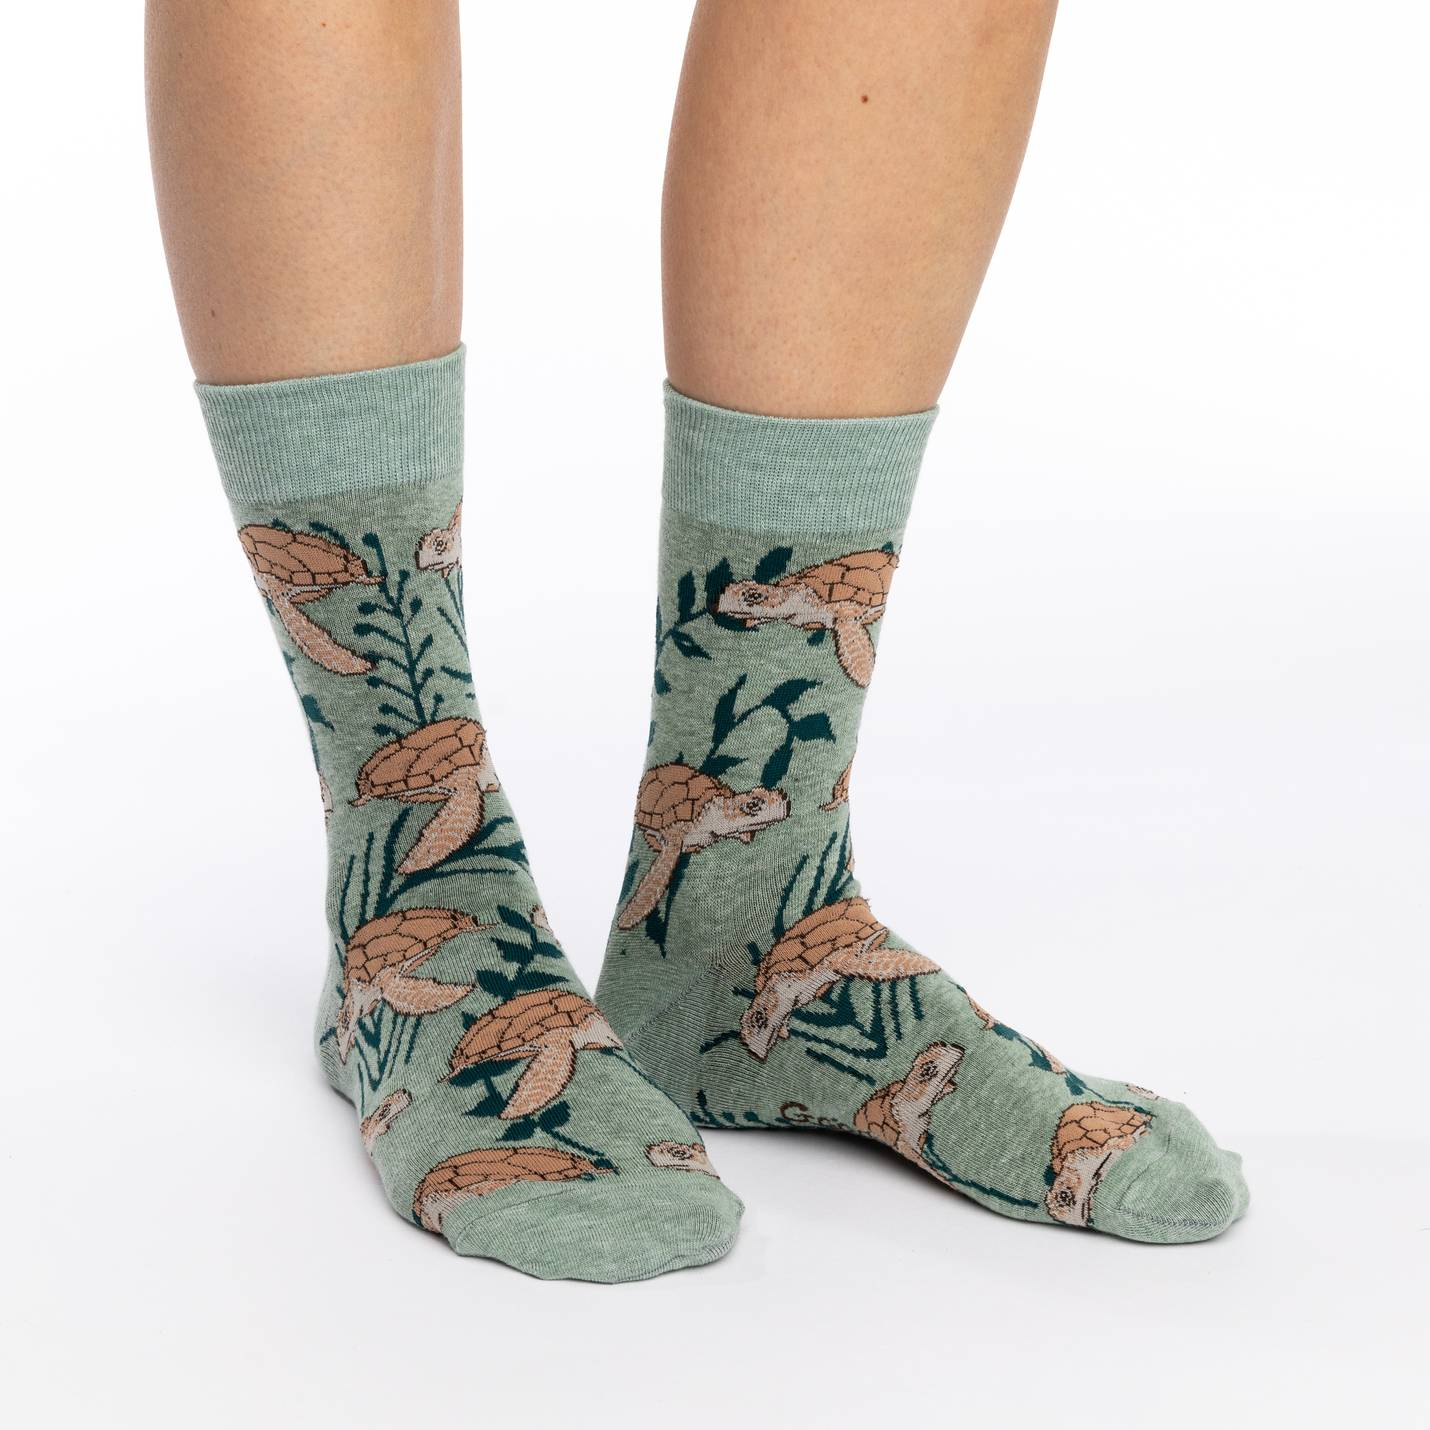 Good Luck Sock Women's - Sea Turtles